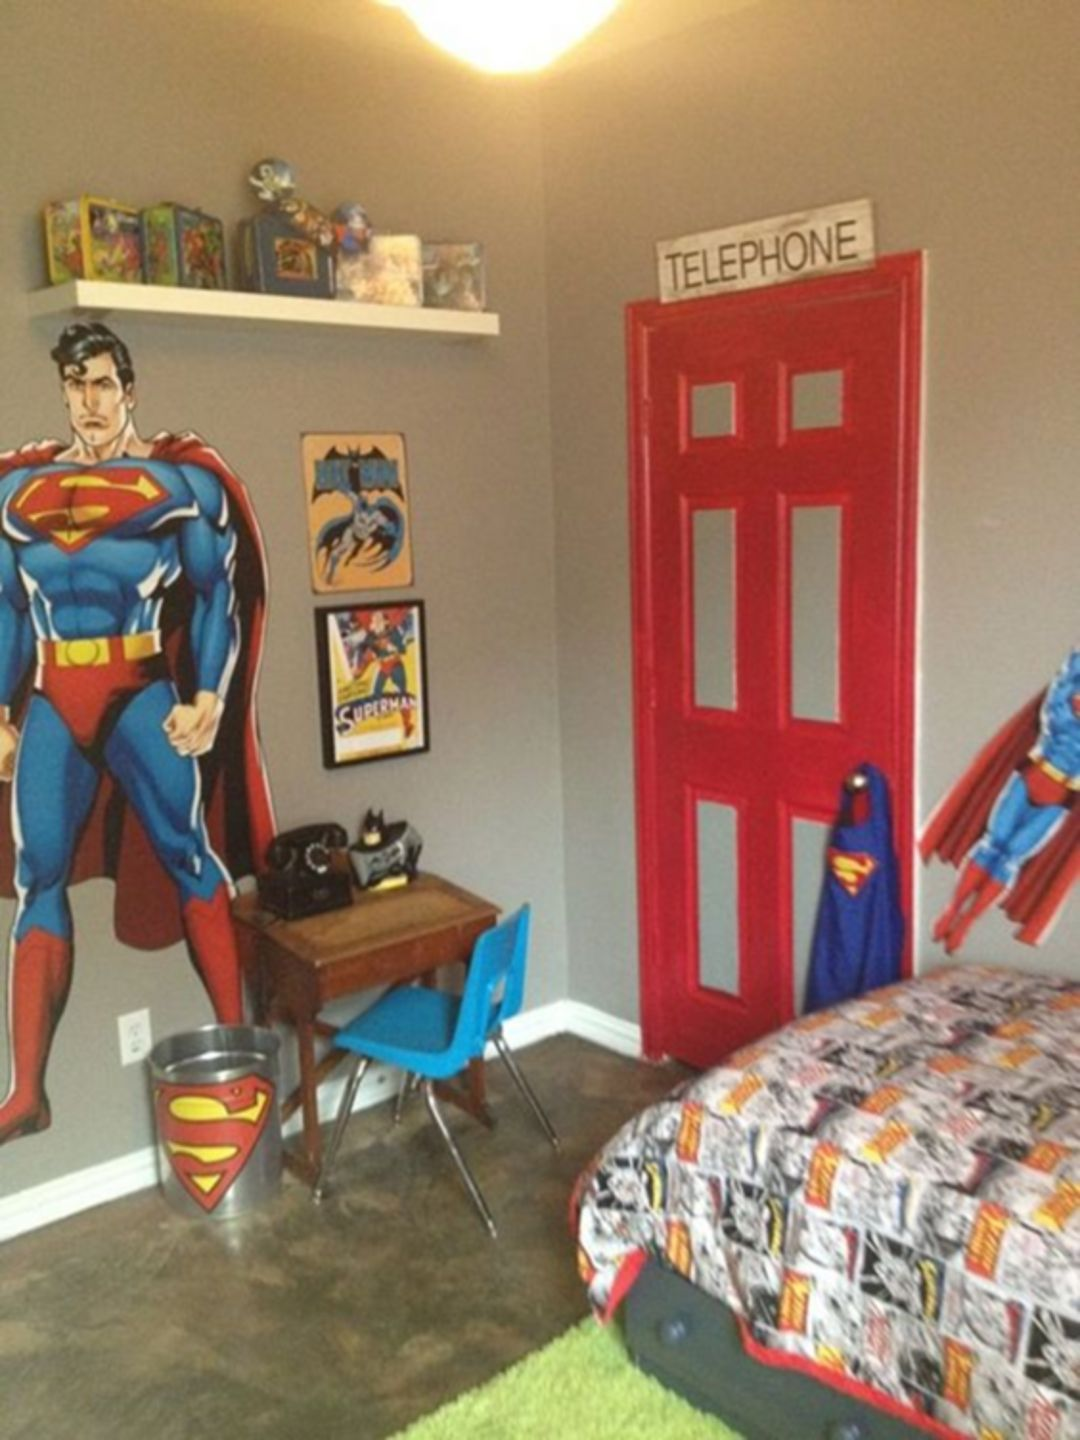 15 Fabulous Boys Room Design Ideas With Marvel Hero Theme images